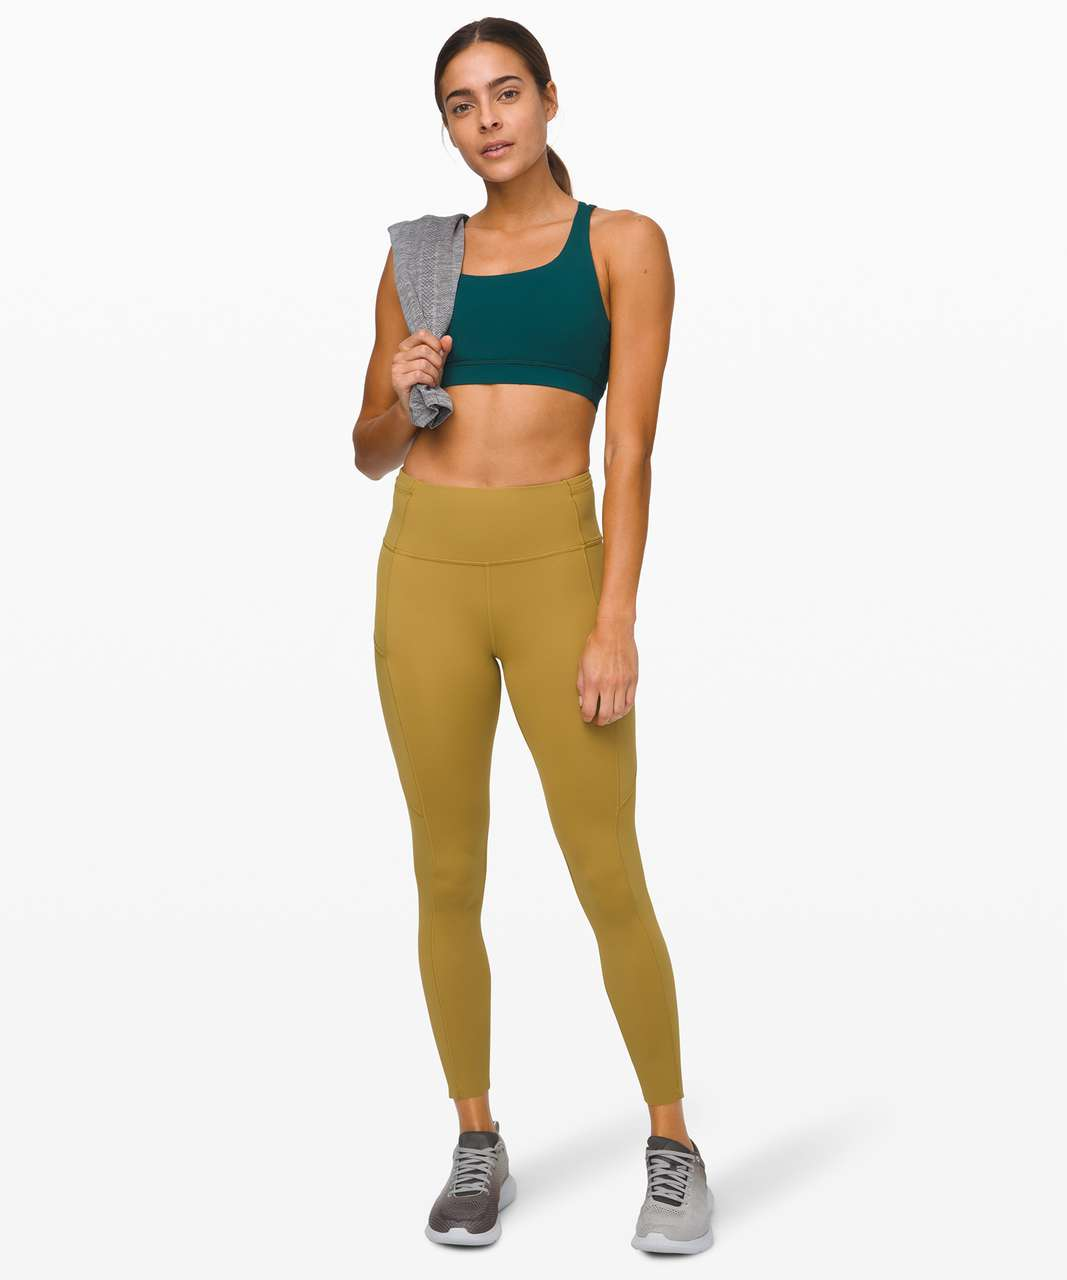 "Lululemon Fast and Free Tight II 25"" *Non-Reflective Nulux - Grape Leaf"